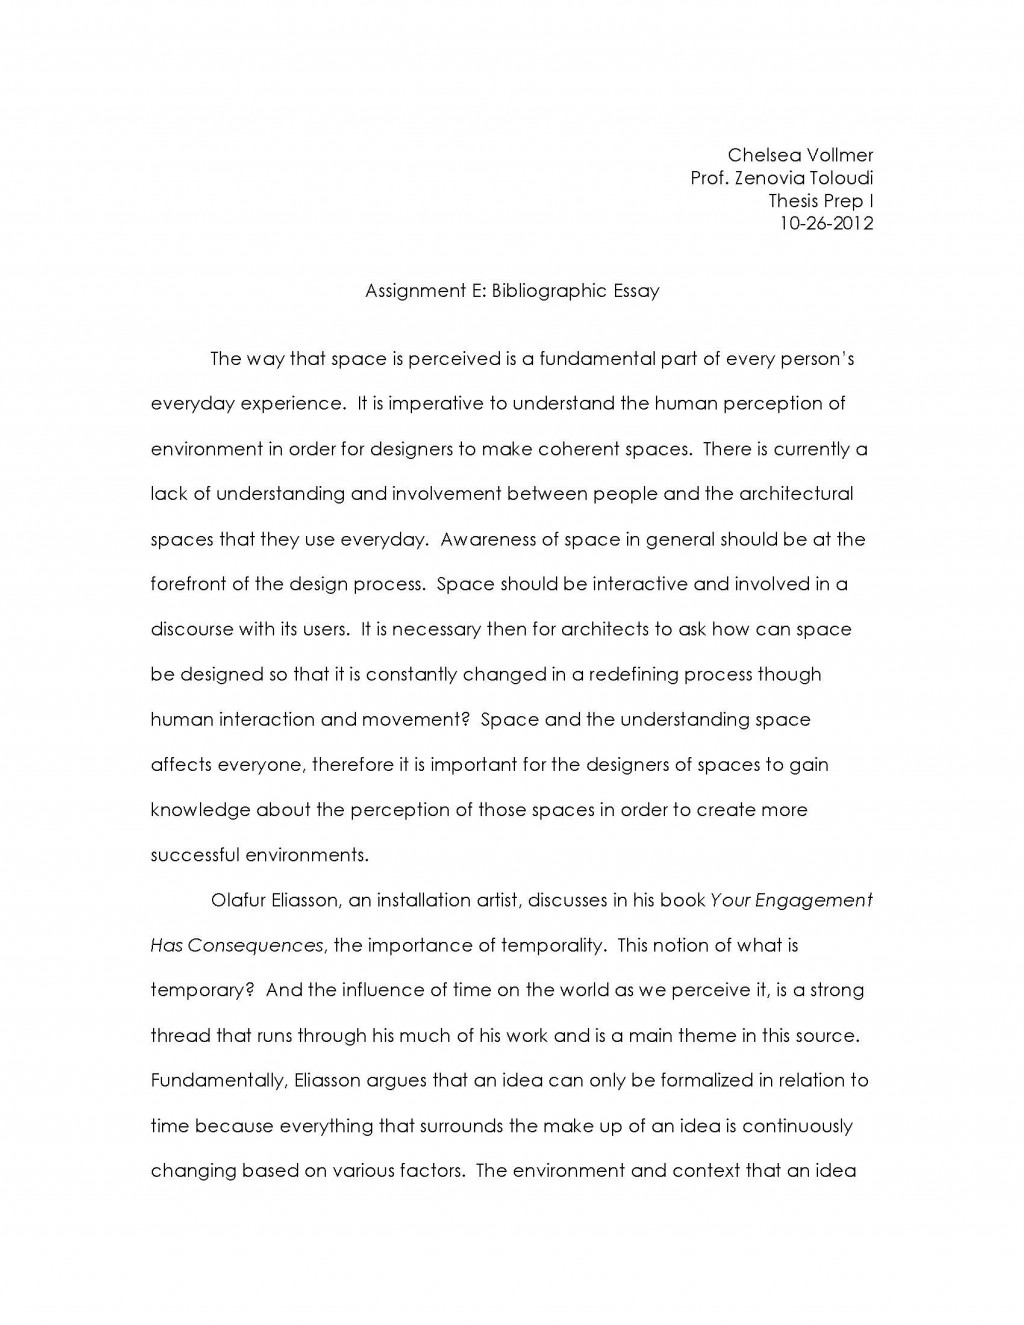 012 Writing Satirical Essay Assignment E Page 12 Top A Examples Of Satire Topics To Write On Sample Essays Large